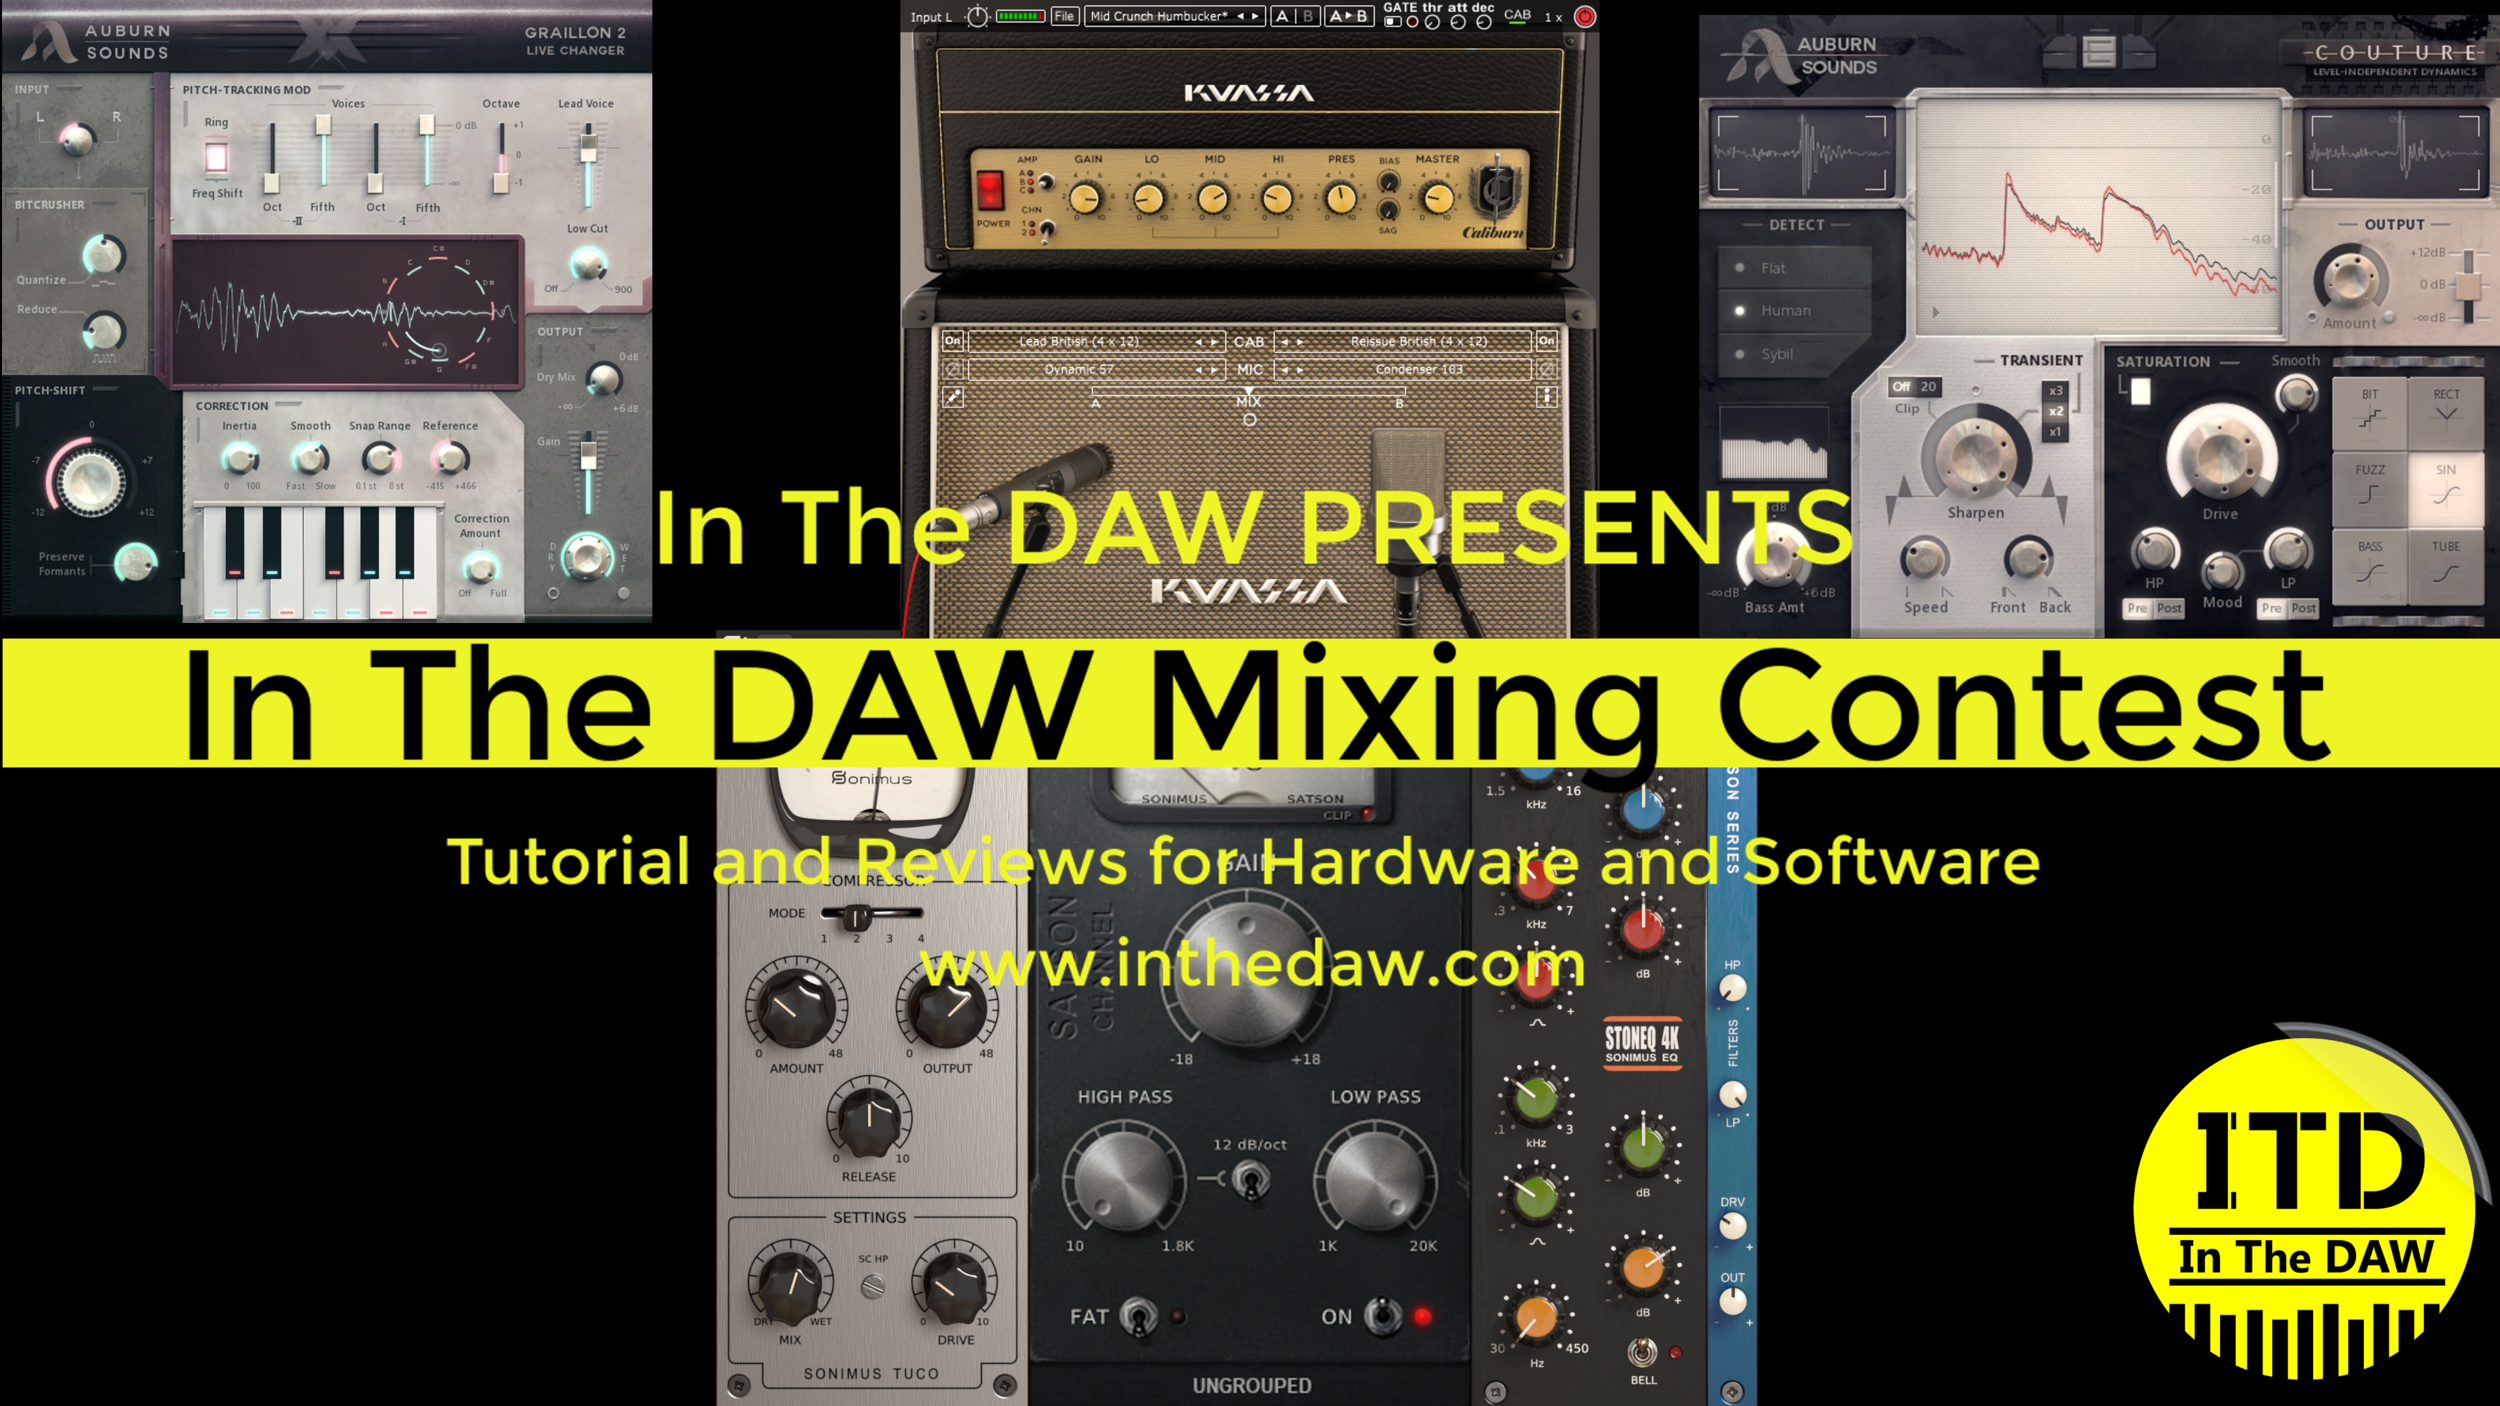 Mixing contest anouncment screen.png